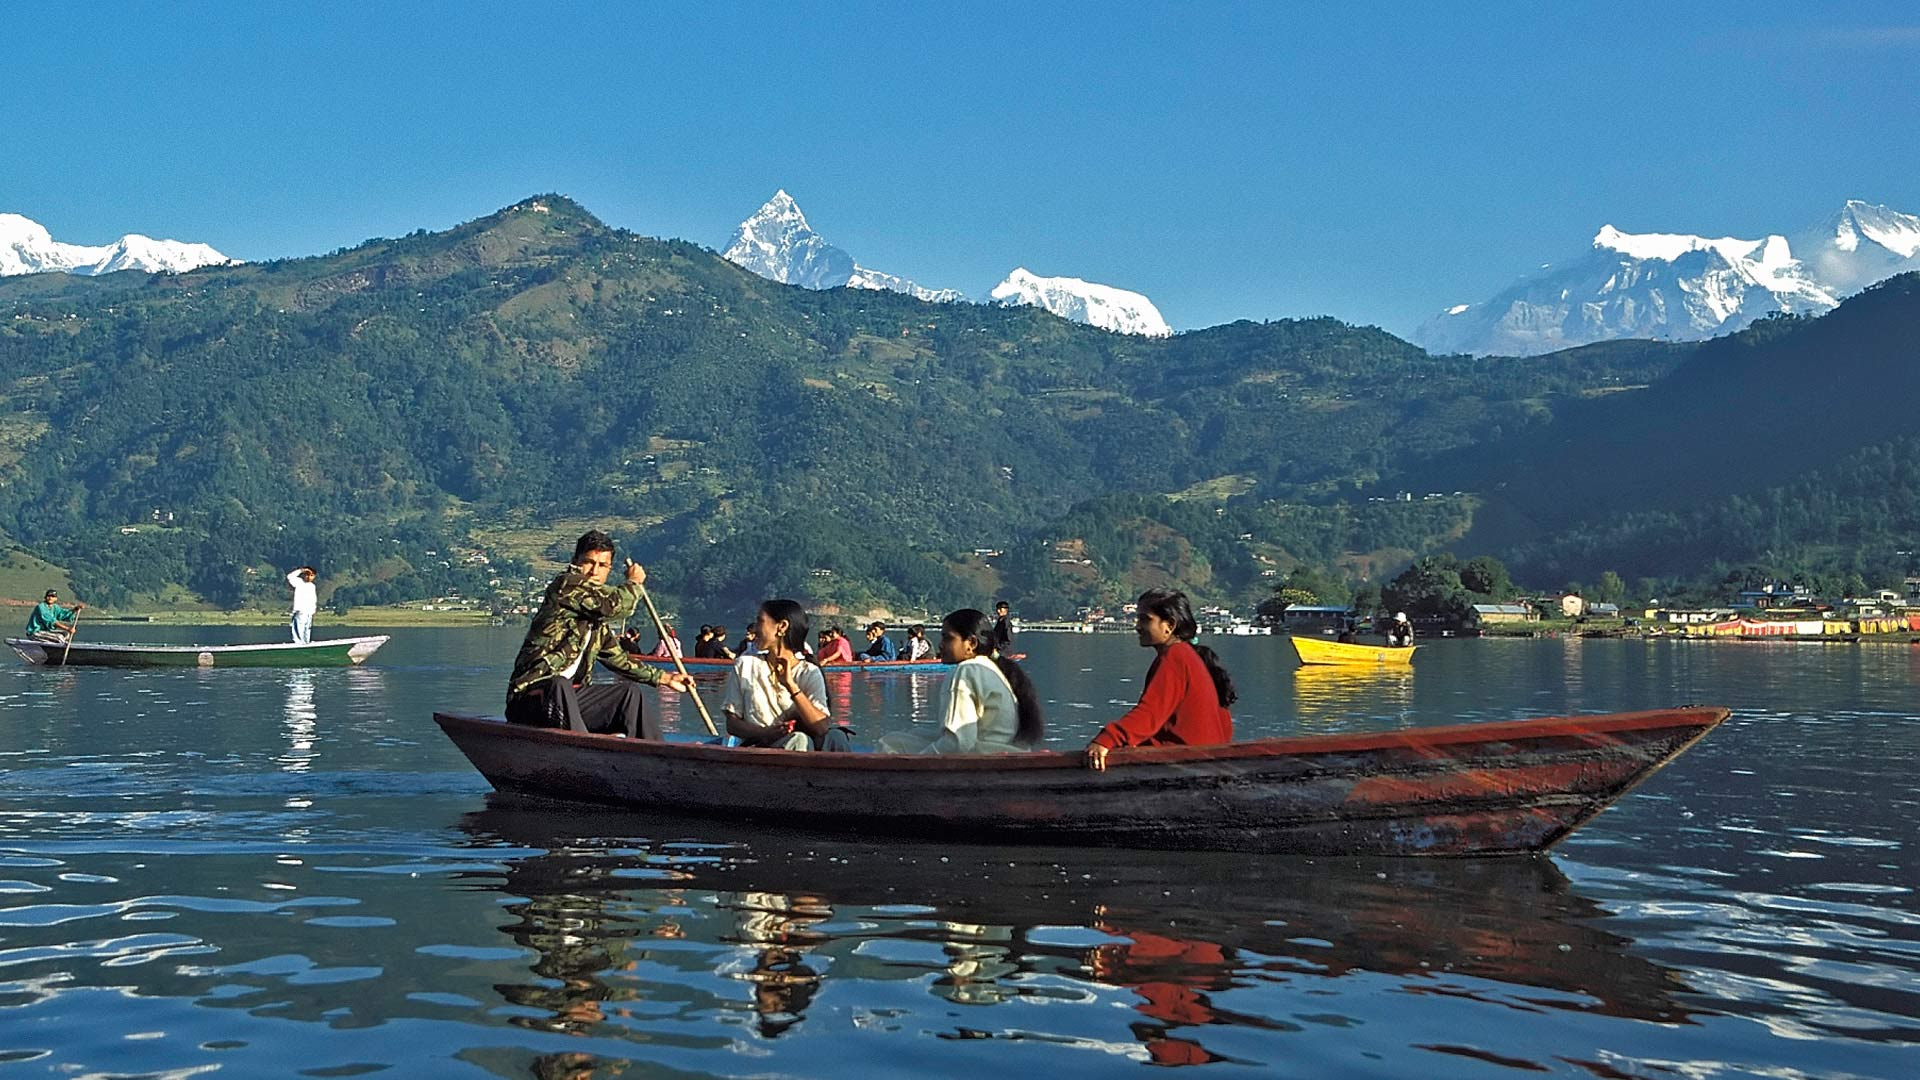 Boats in Phewa Lake, with the Annapurna Range in the background, Pokhara, Pashchimanchal (Western Region), Nepal